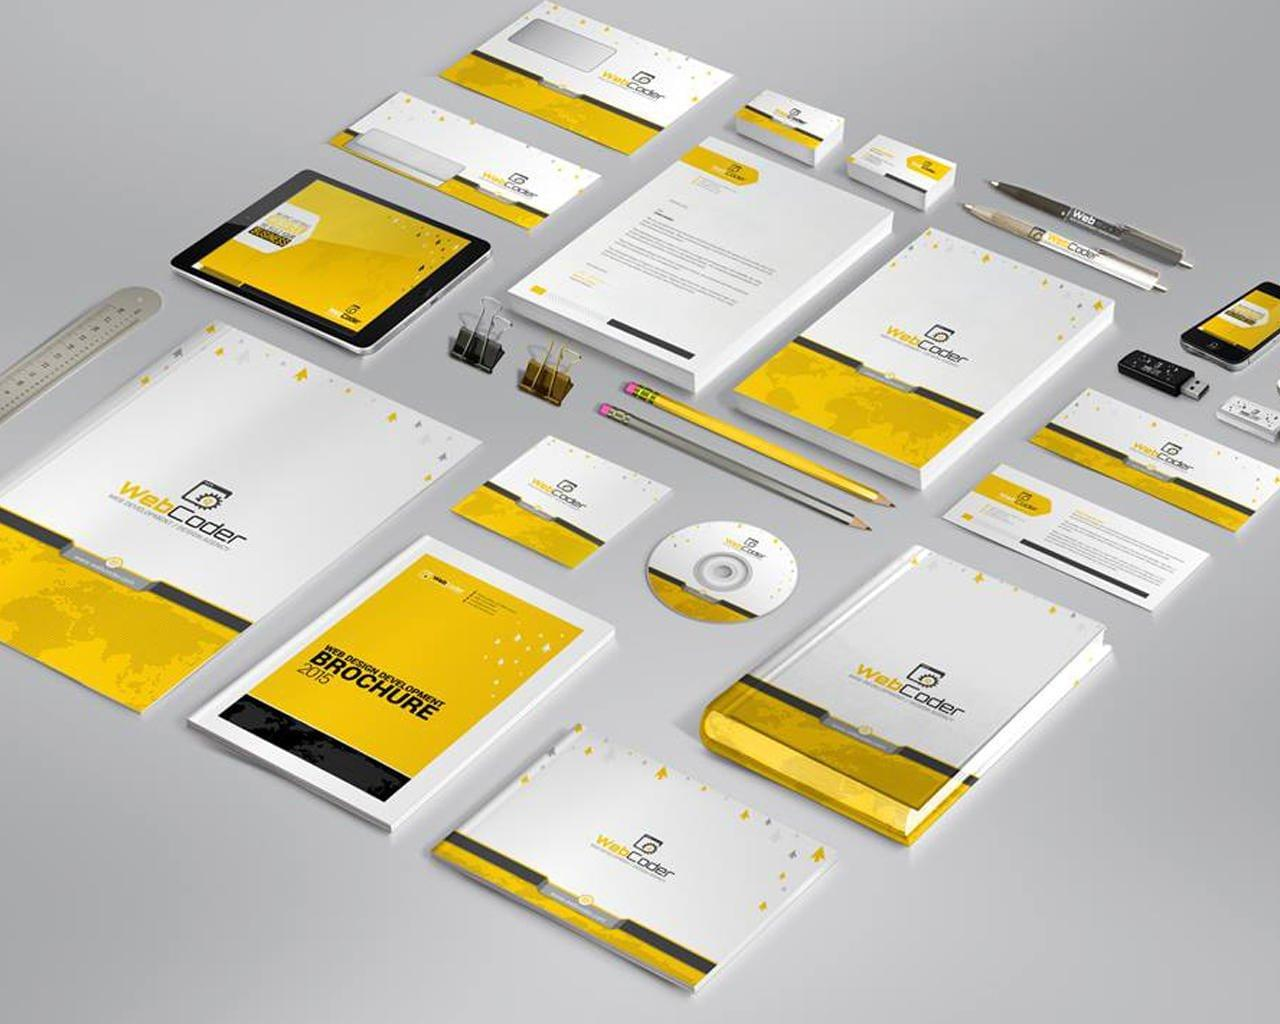 high quality professional stationery design by edgybrain on envato